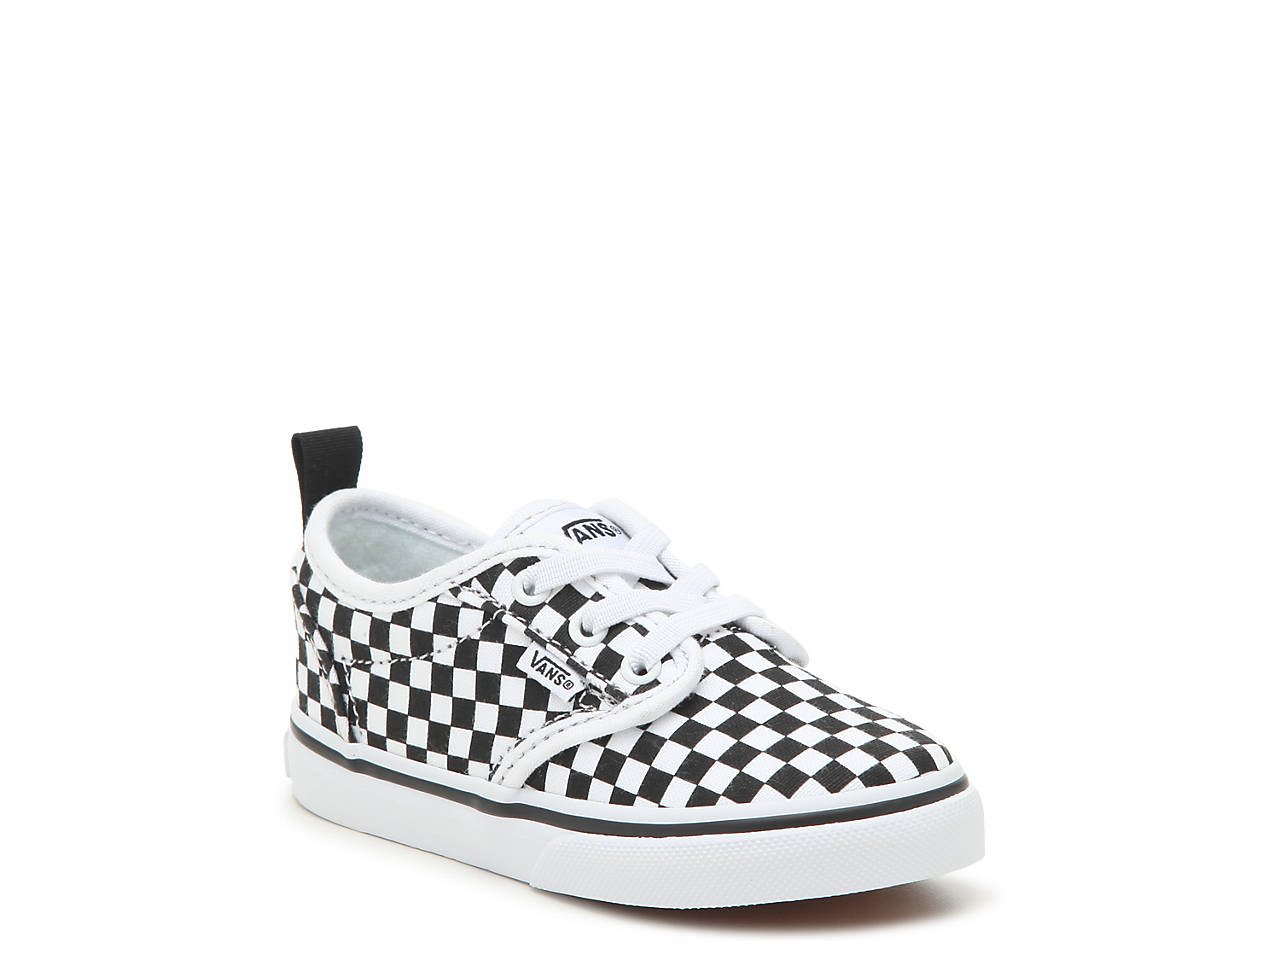 50a0596256 Vans Atwood Infant   Toddler Slip-On Sneaker Kids Shoes